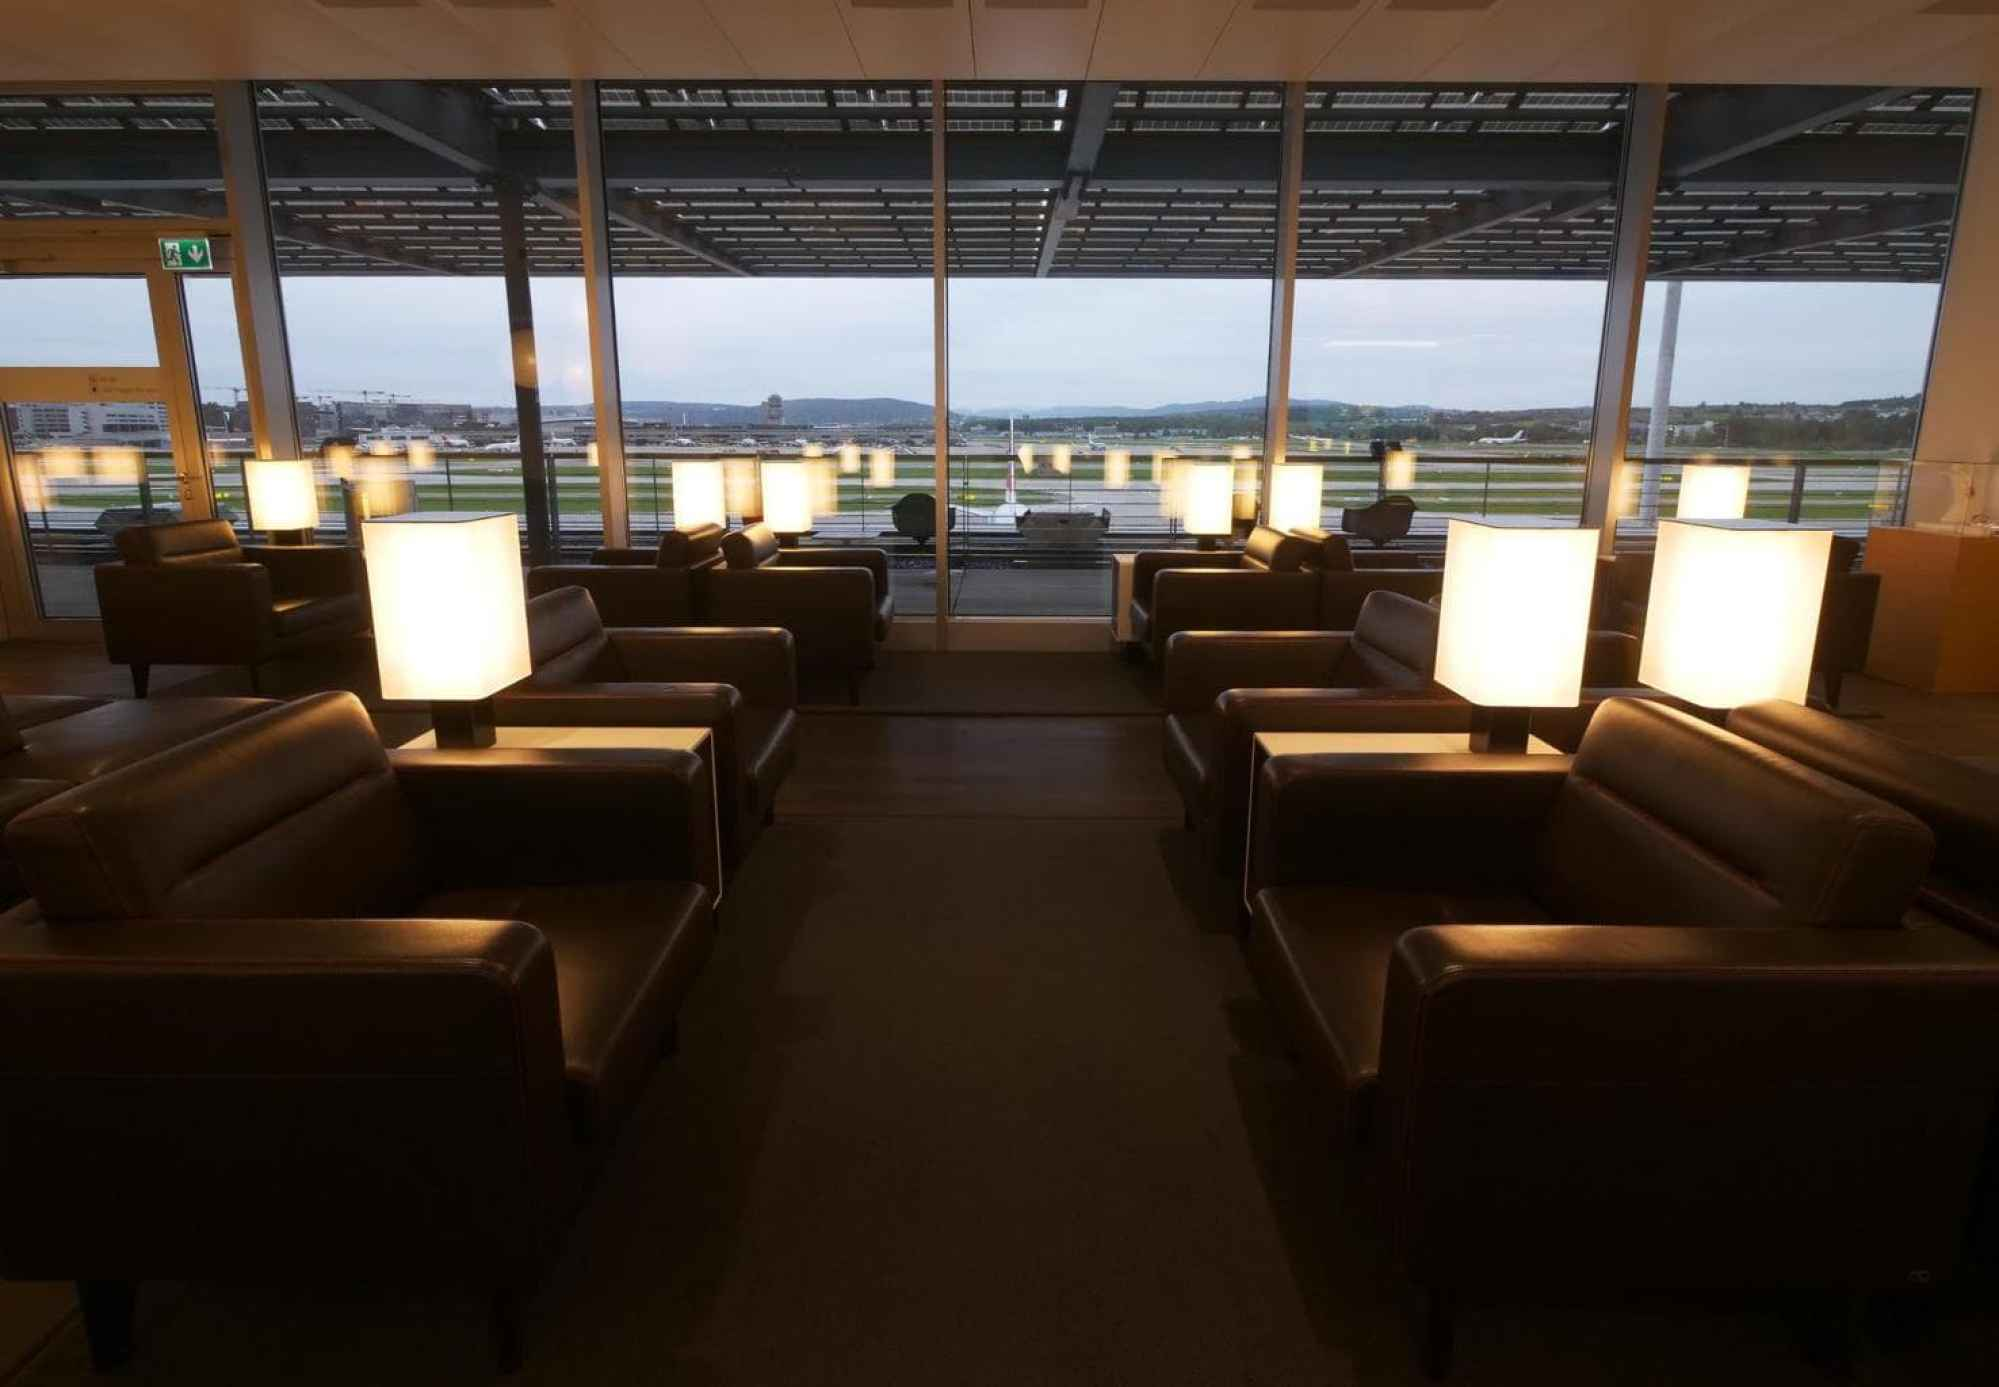 Sofa area in Swiss Business Class Lounge at Zurich airport